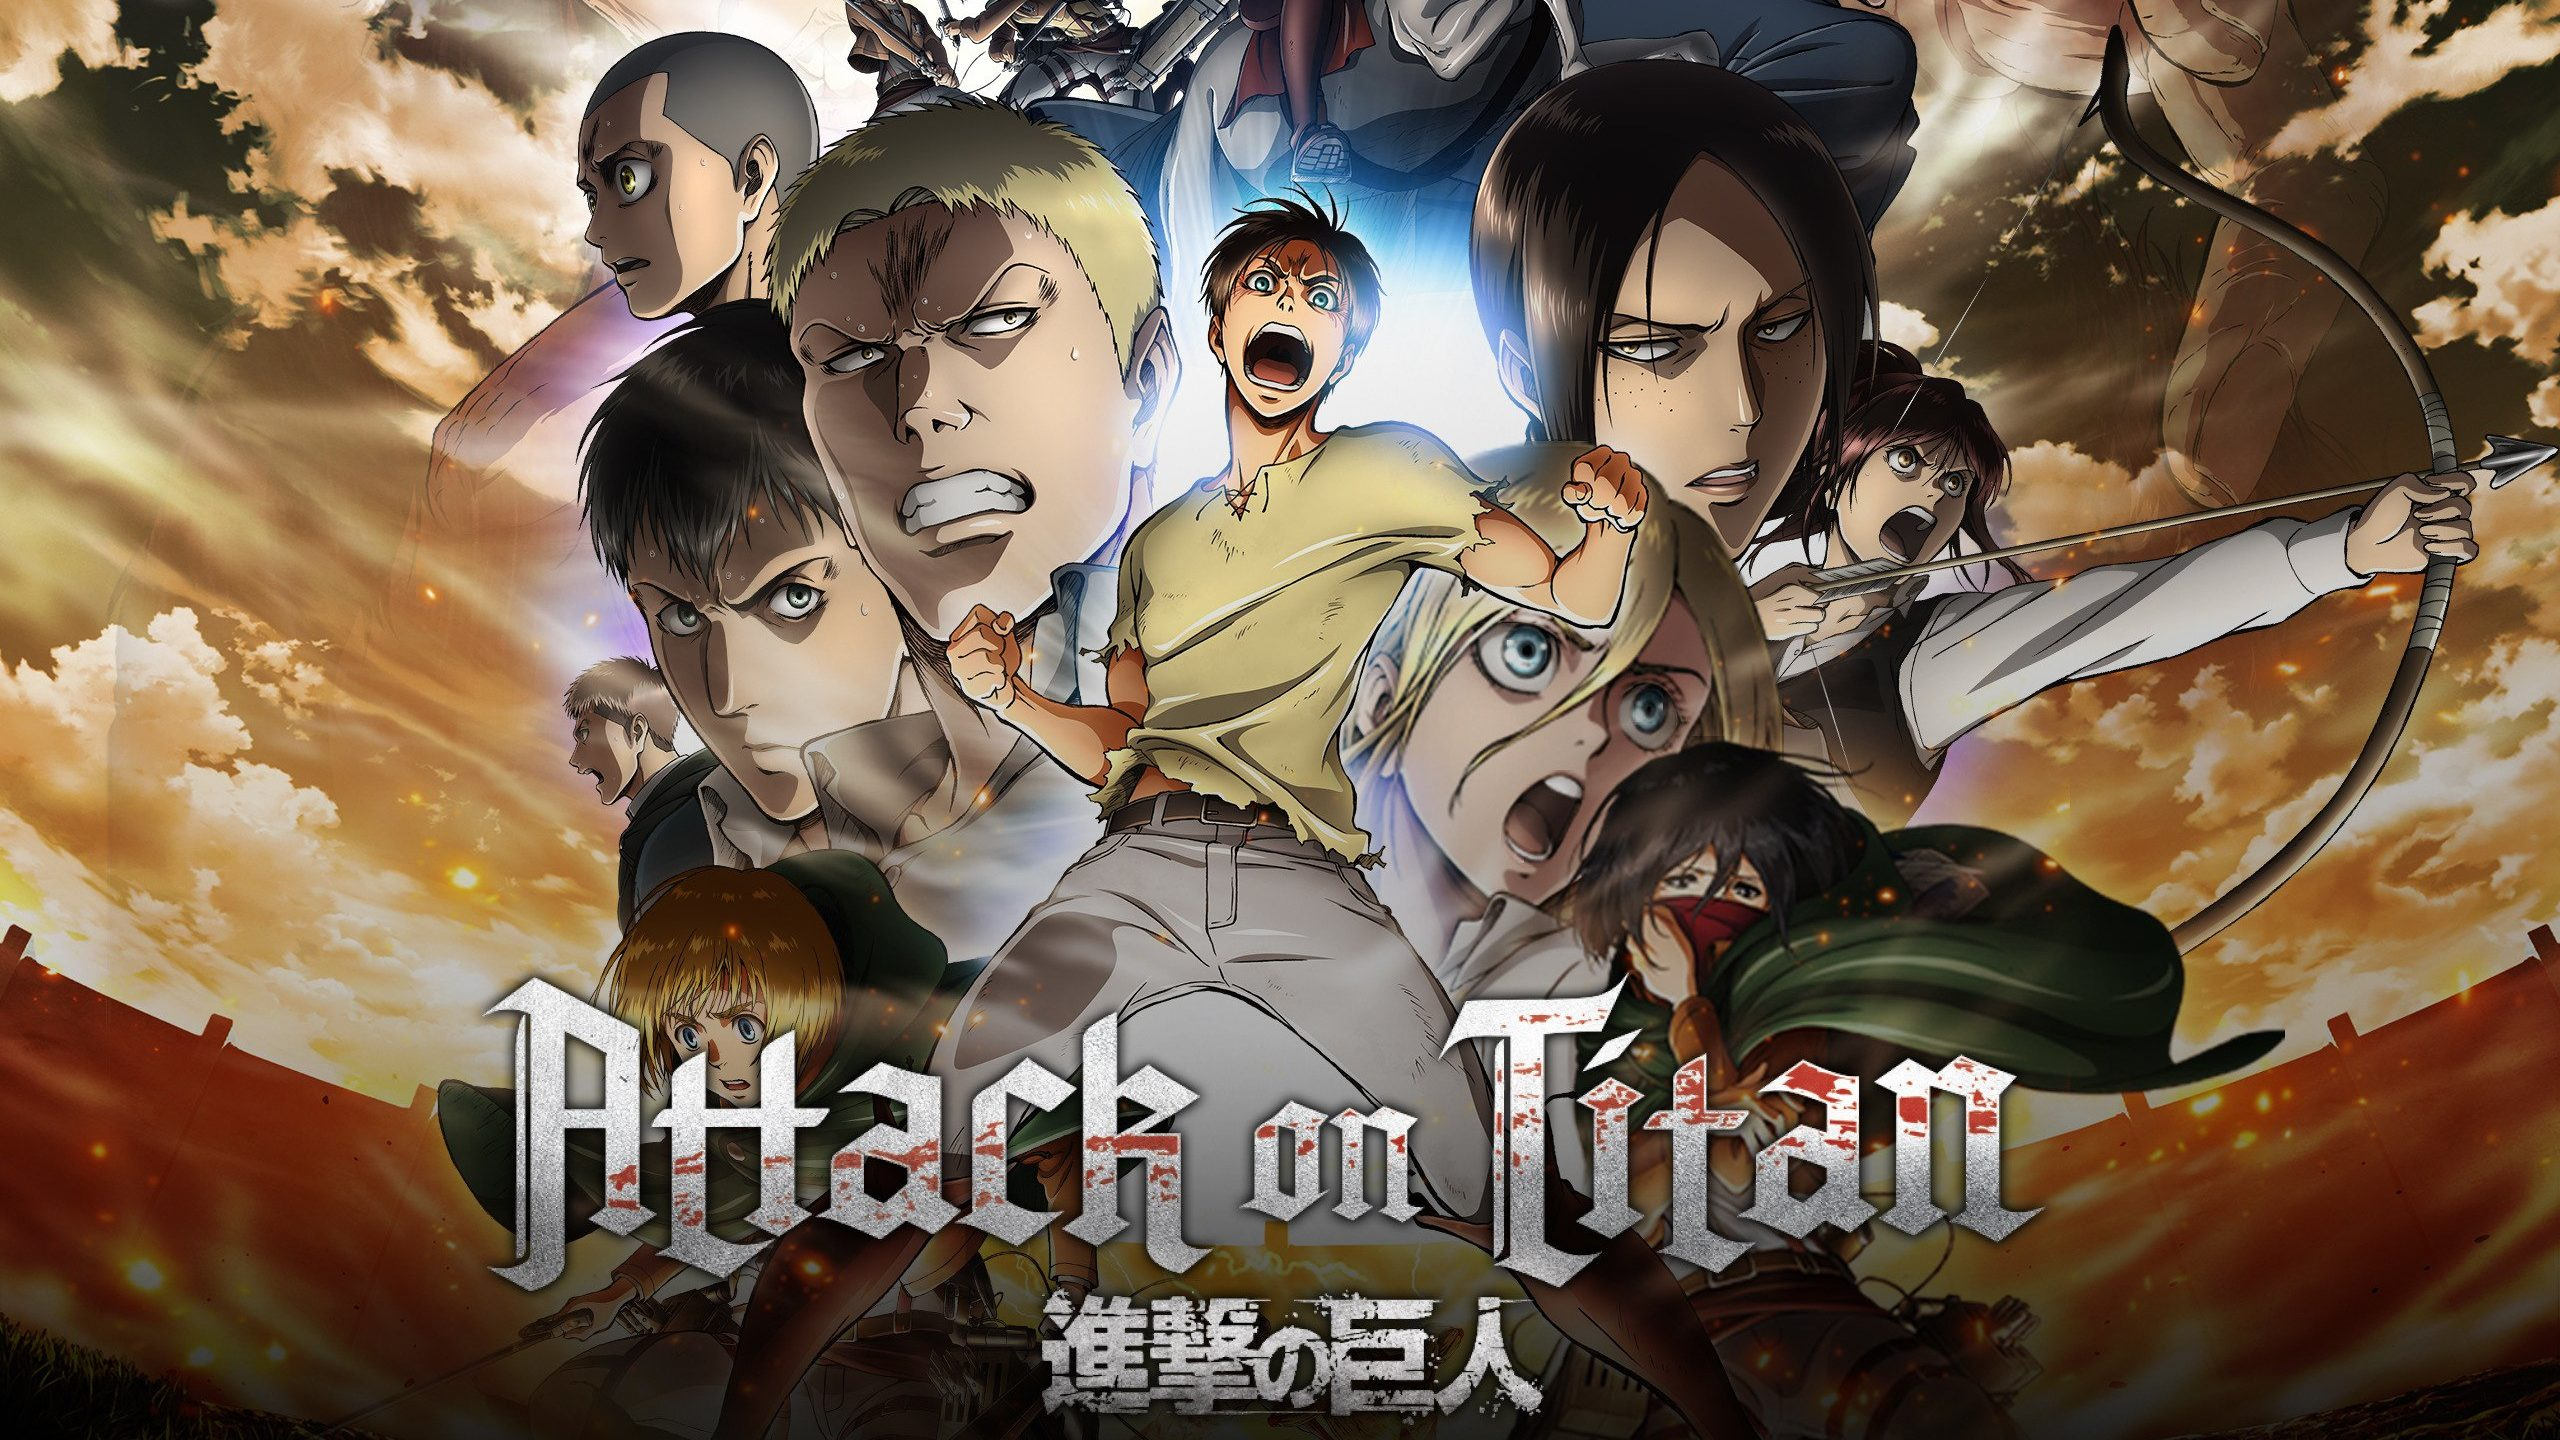 Attack on Titan season 3 season 4 release date ending episode